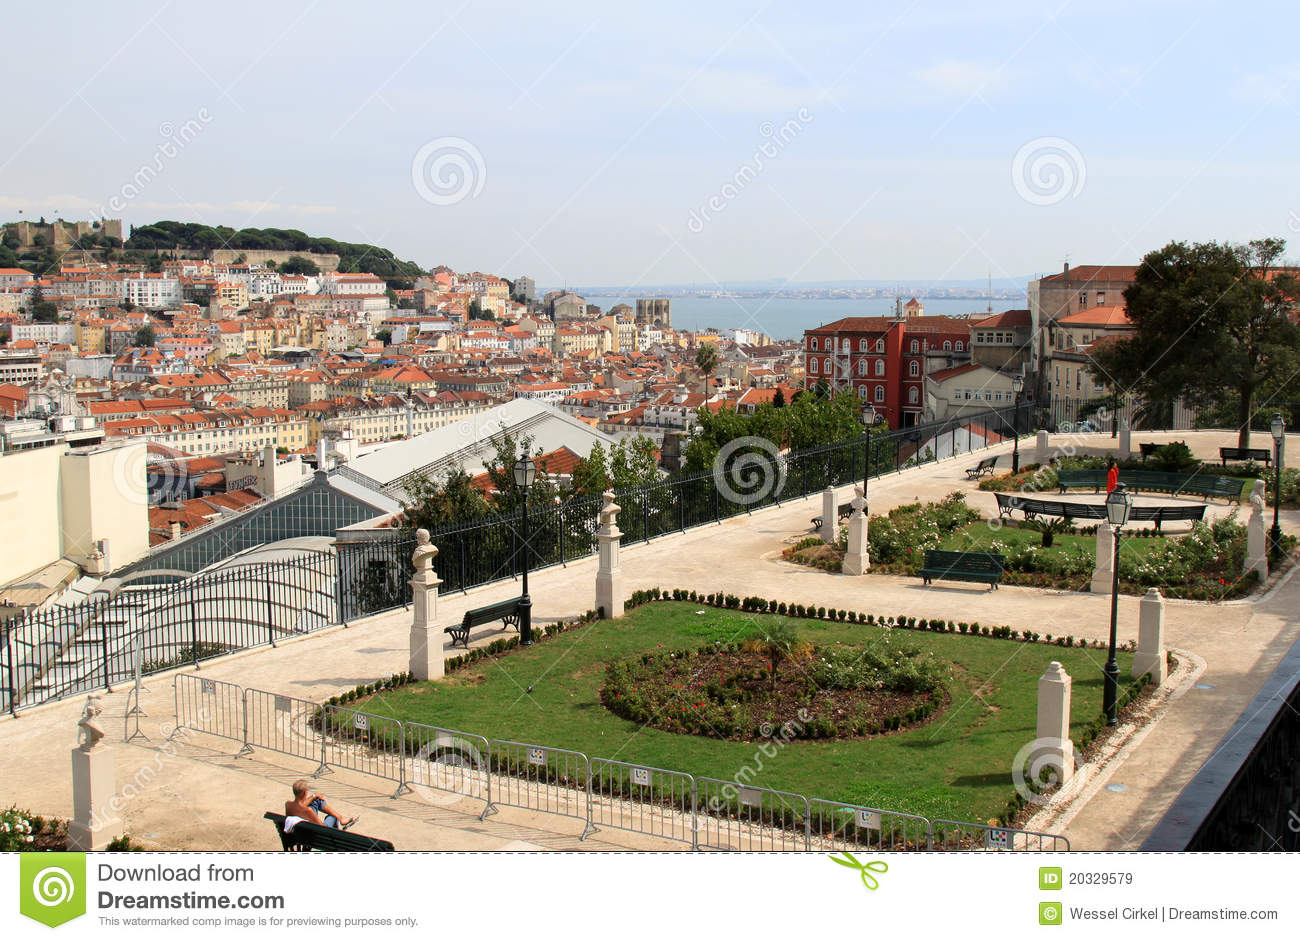 Garden Of San Pedro De Alcantara In Lisbon Stock Photo.